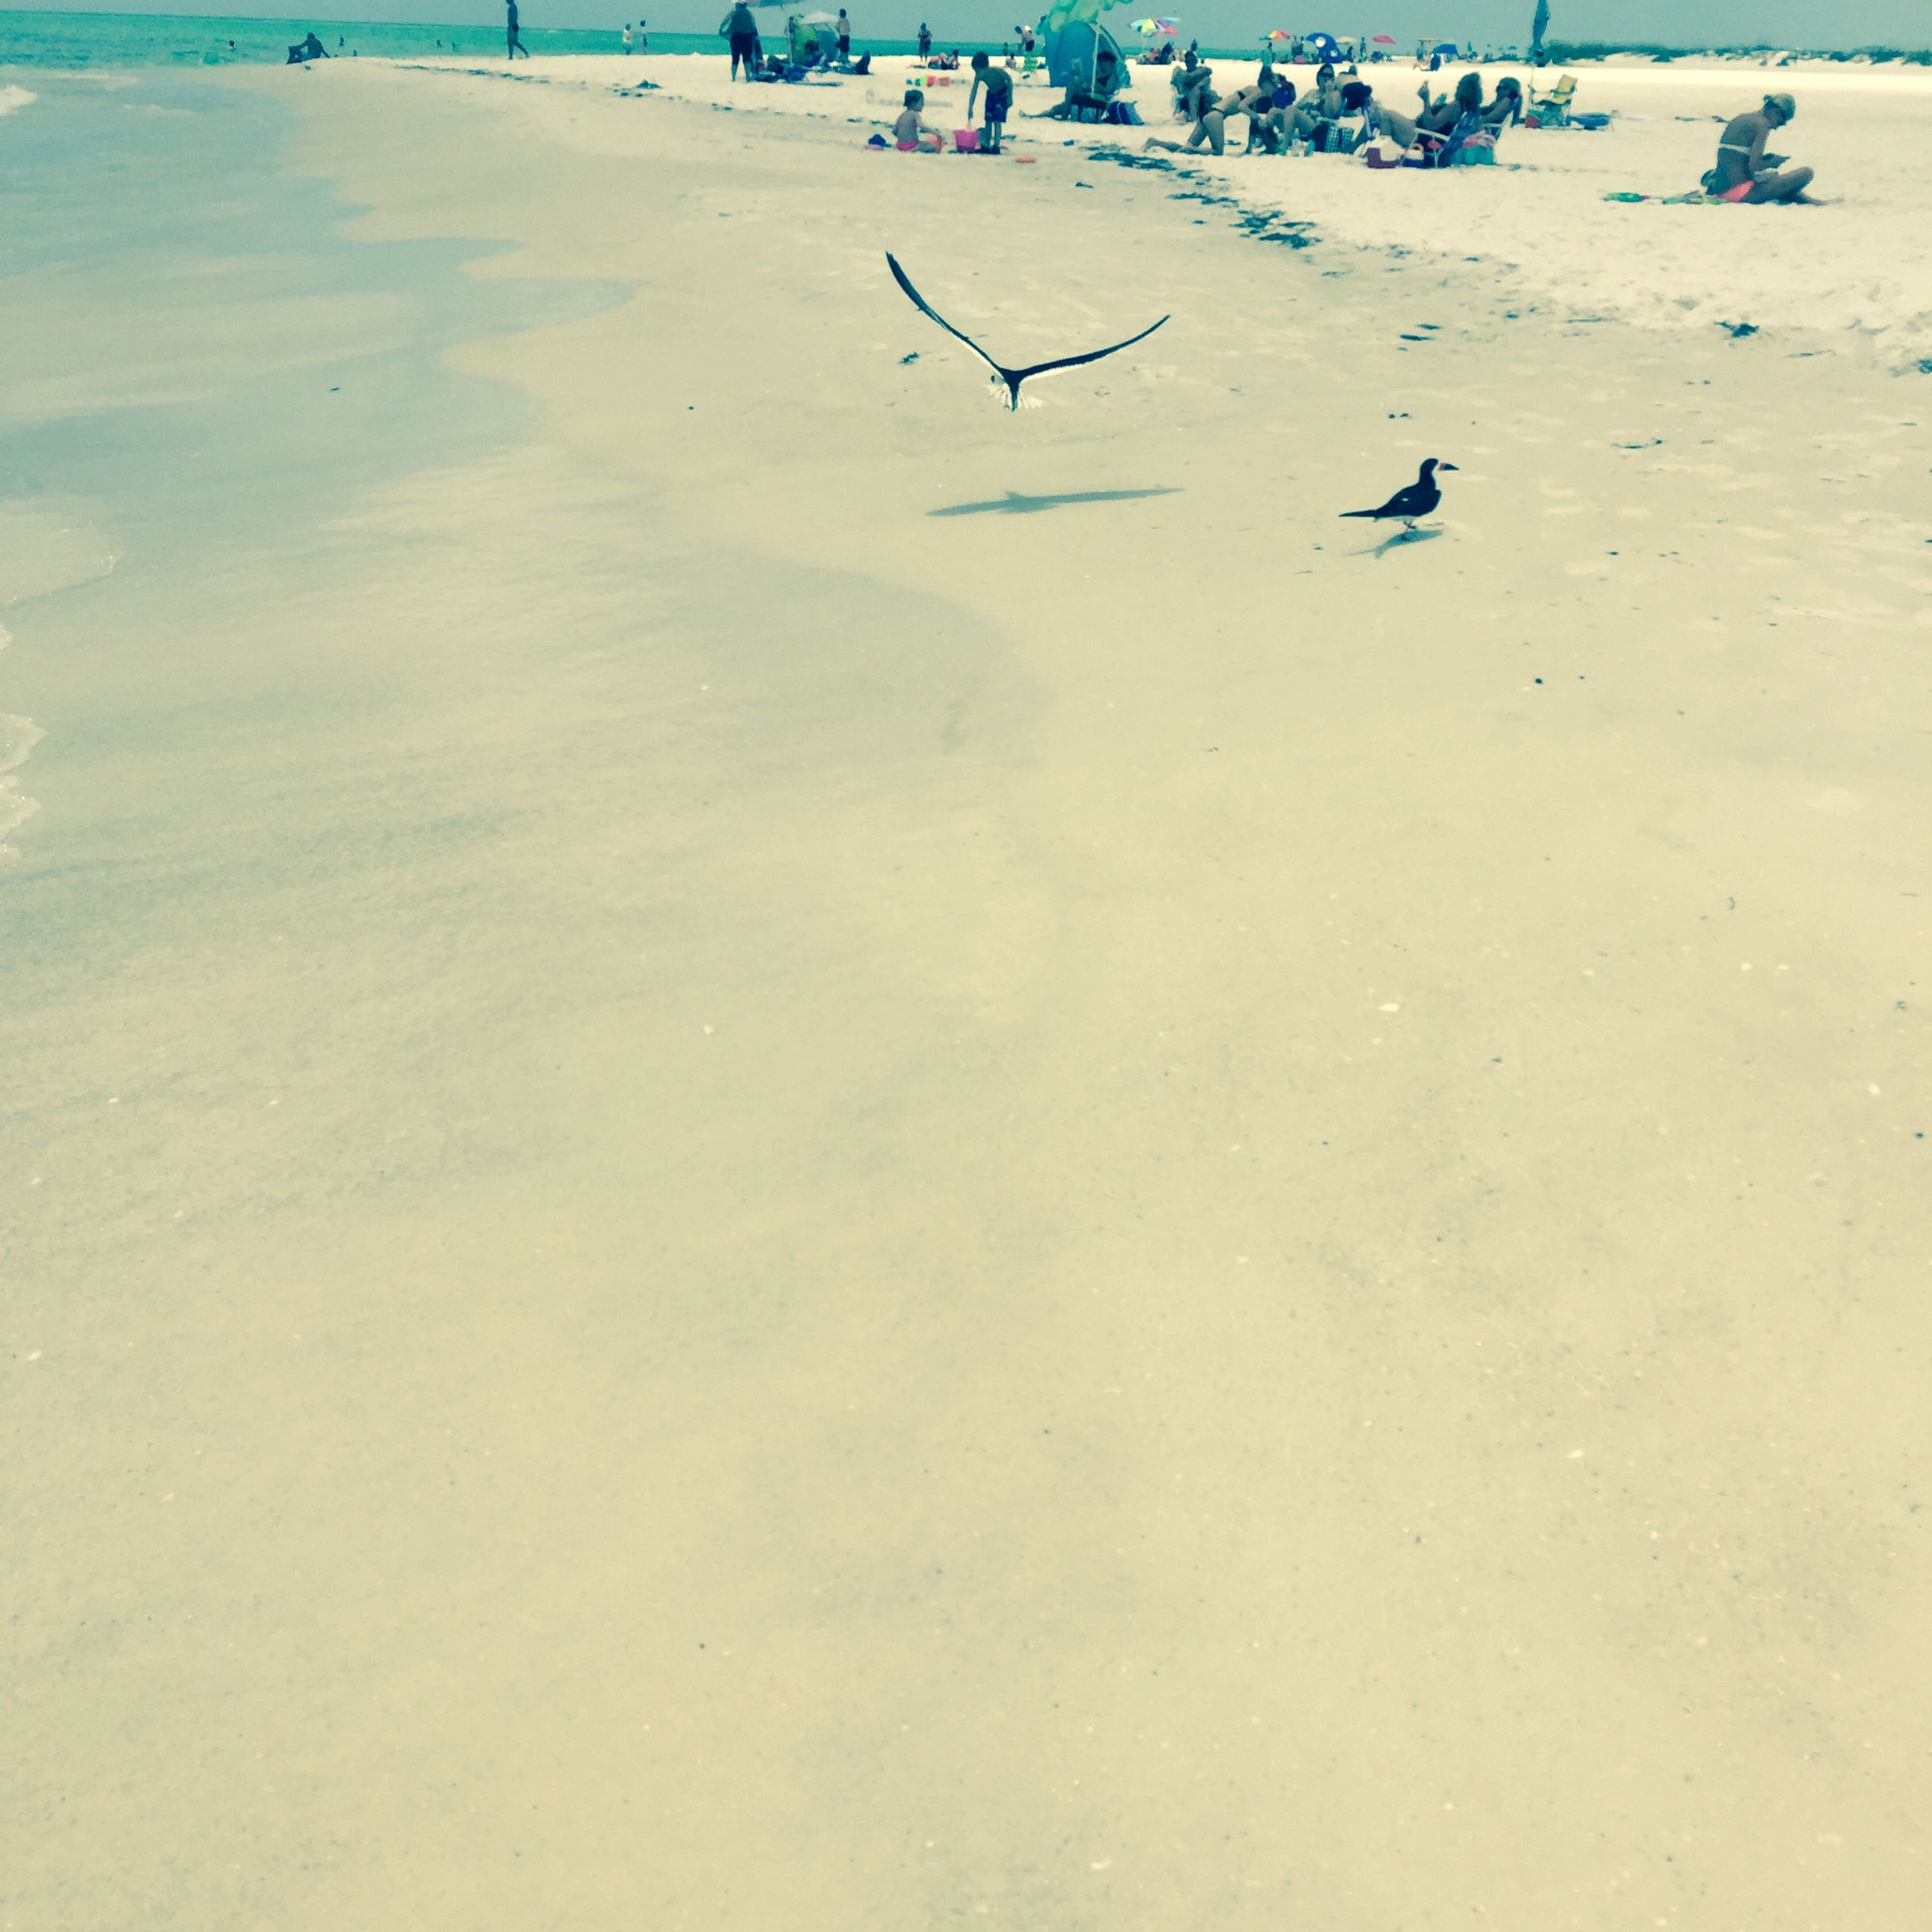 bird, animal themes, sand, beach, animals in the wild, flying, wildlife, high angle view, nature, seagull, tranquility, day, outdoors, beauty in nature, tranquil scene, shore, incidental people, sunlight, footprint